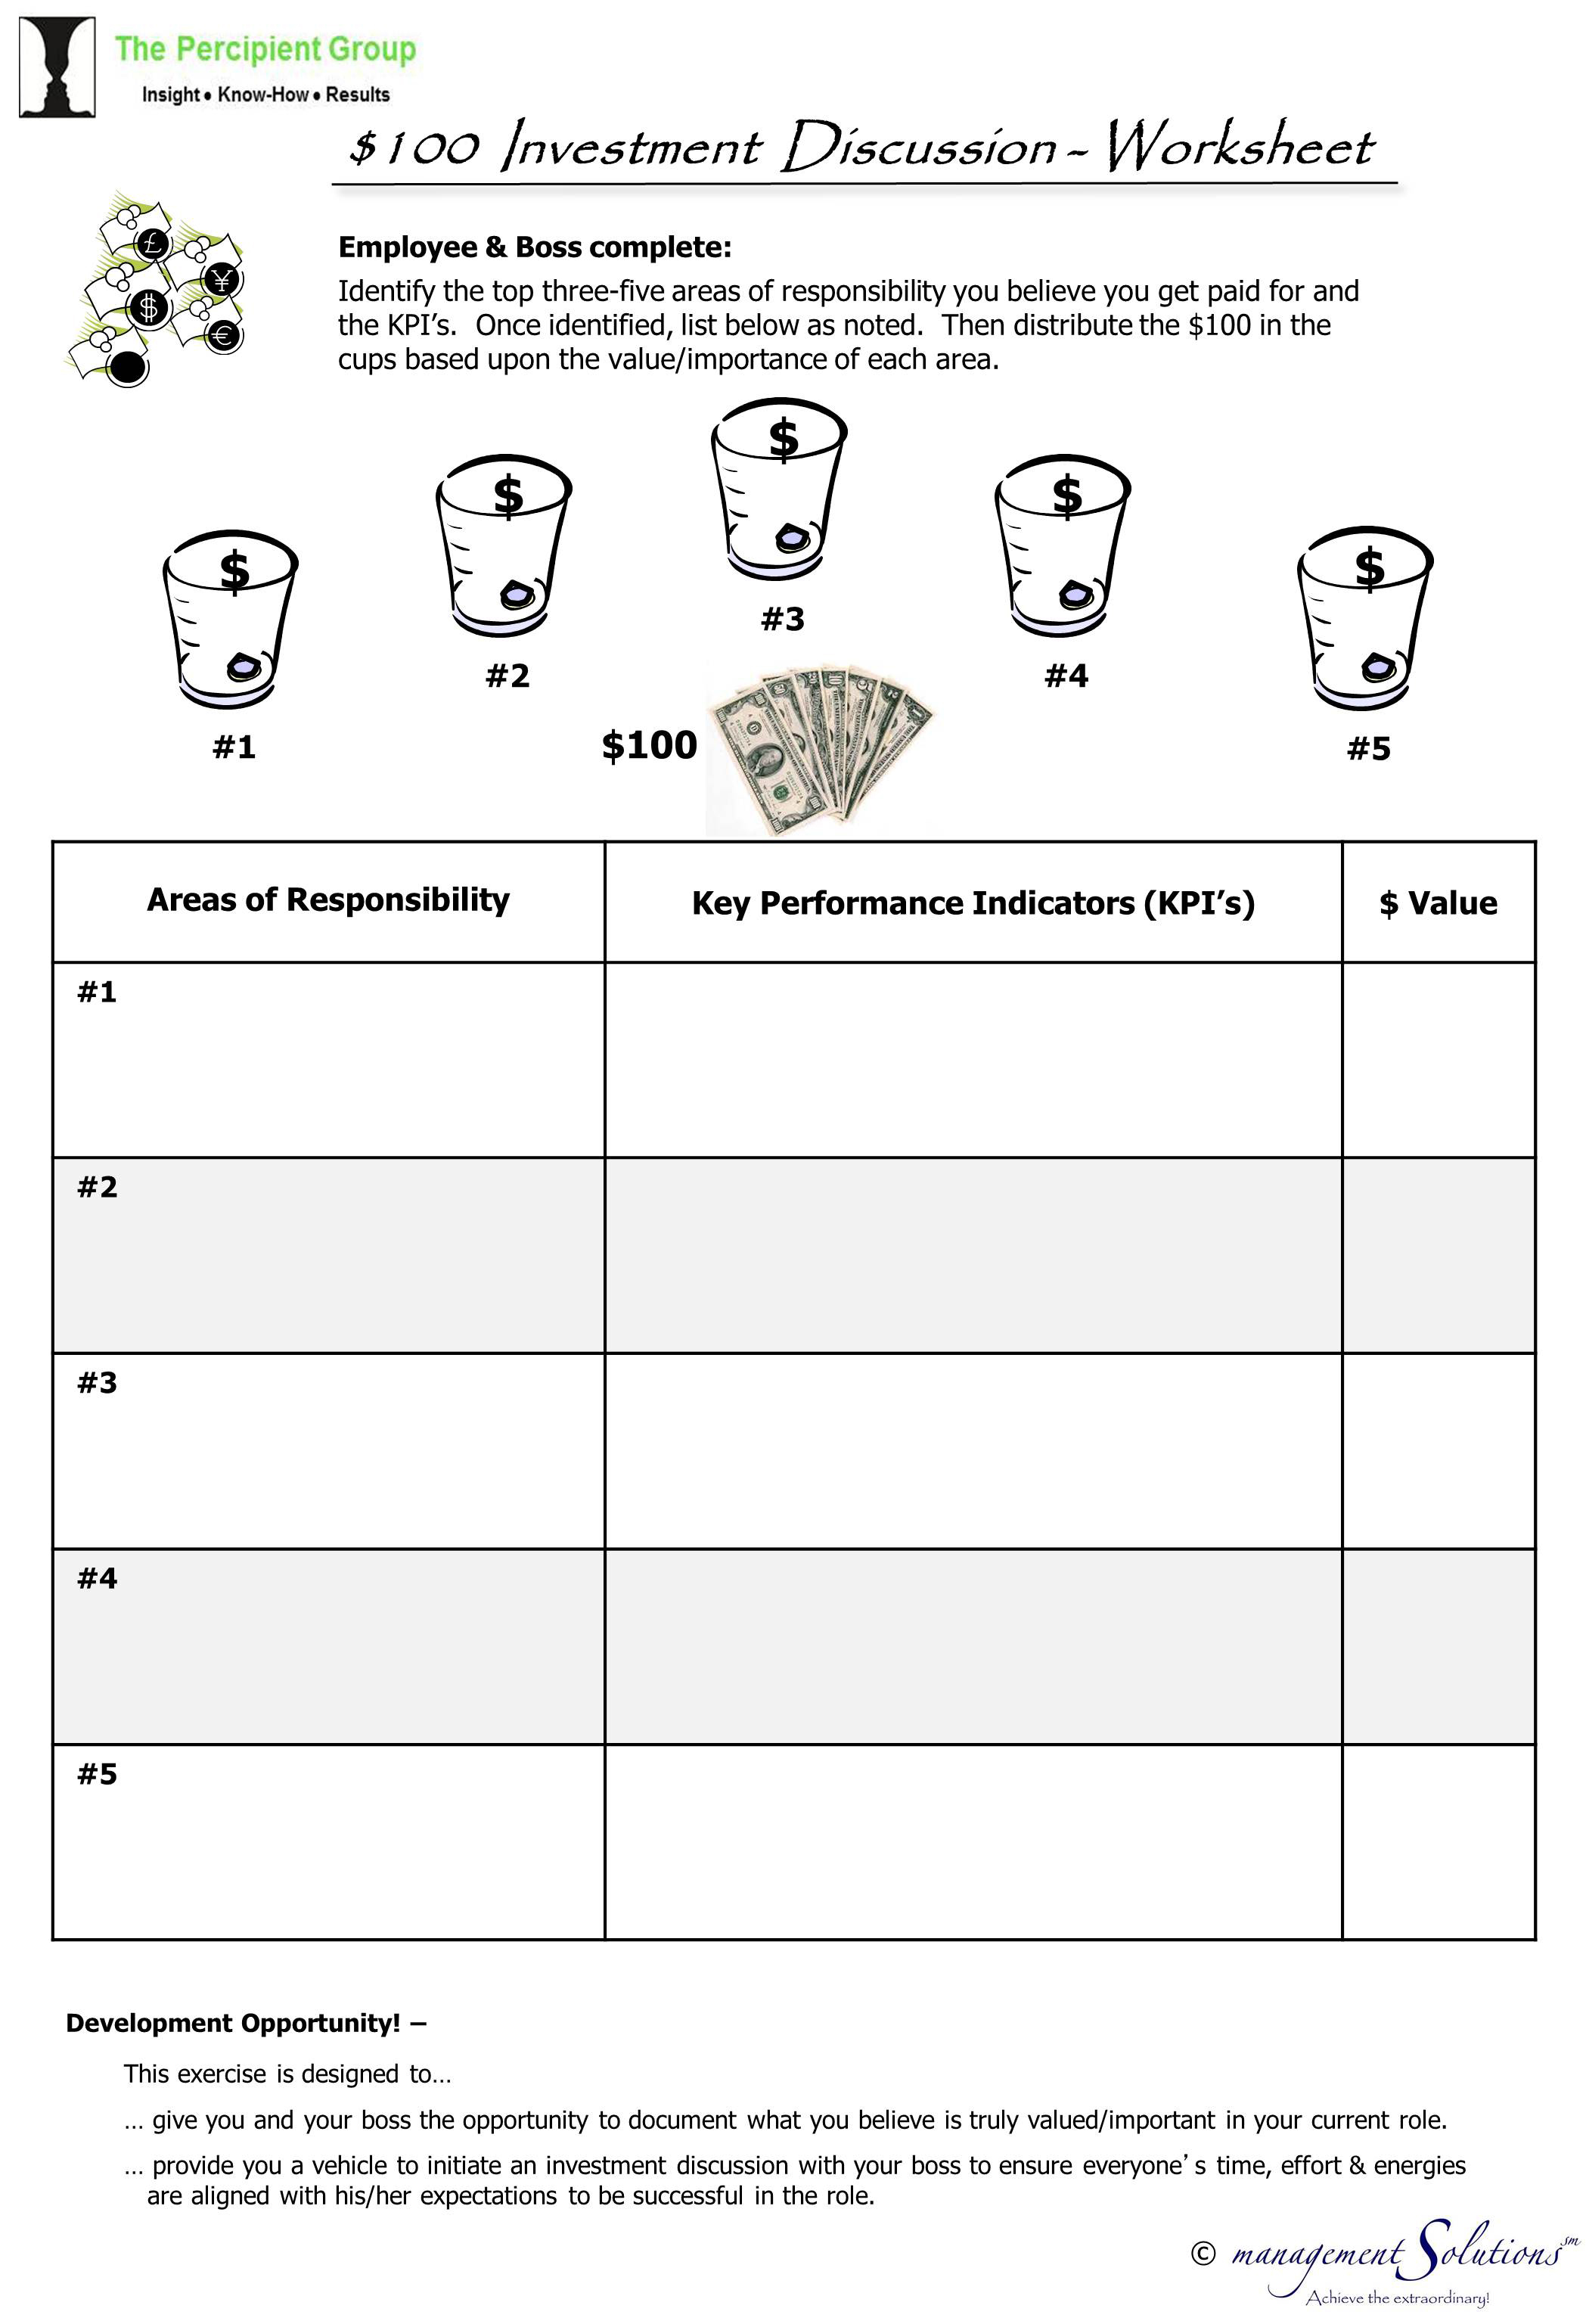 Worksheets Investment Worksheet collection of investment worksheet sharebrowse 100 discussion the percipient group